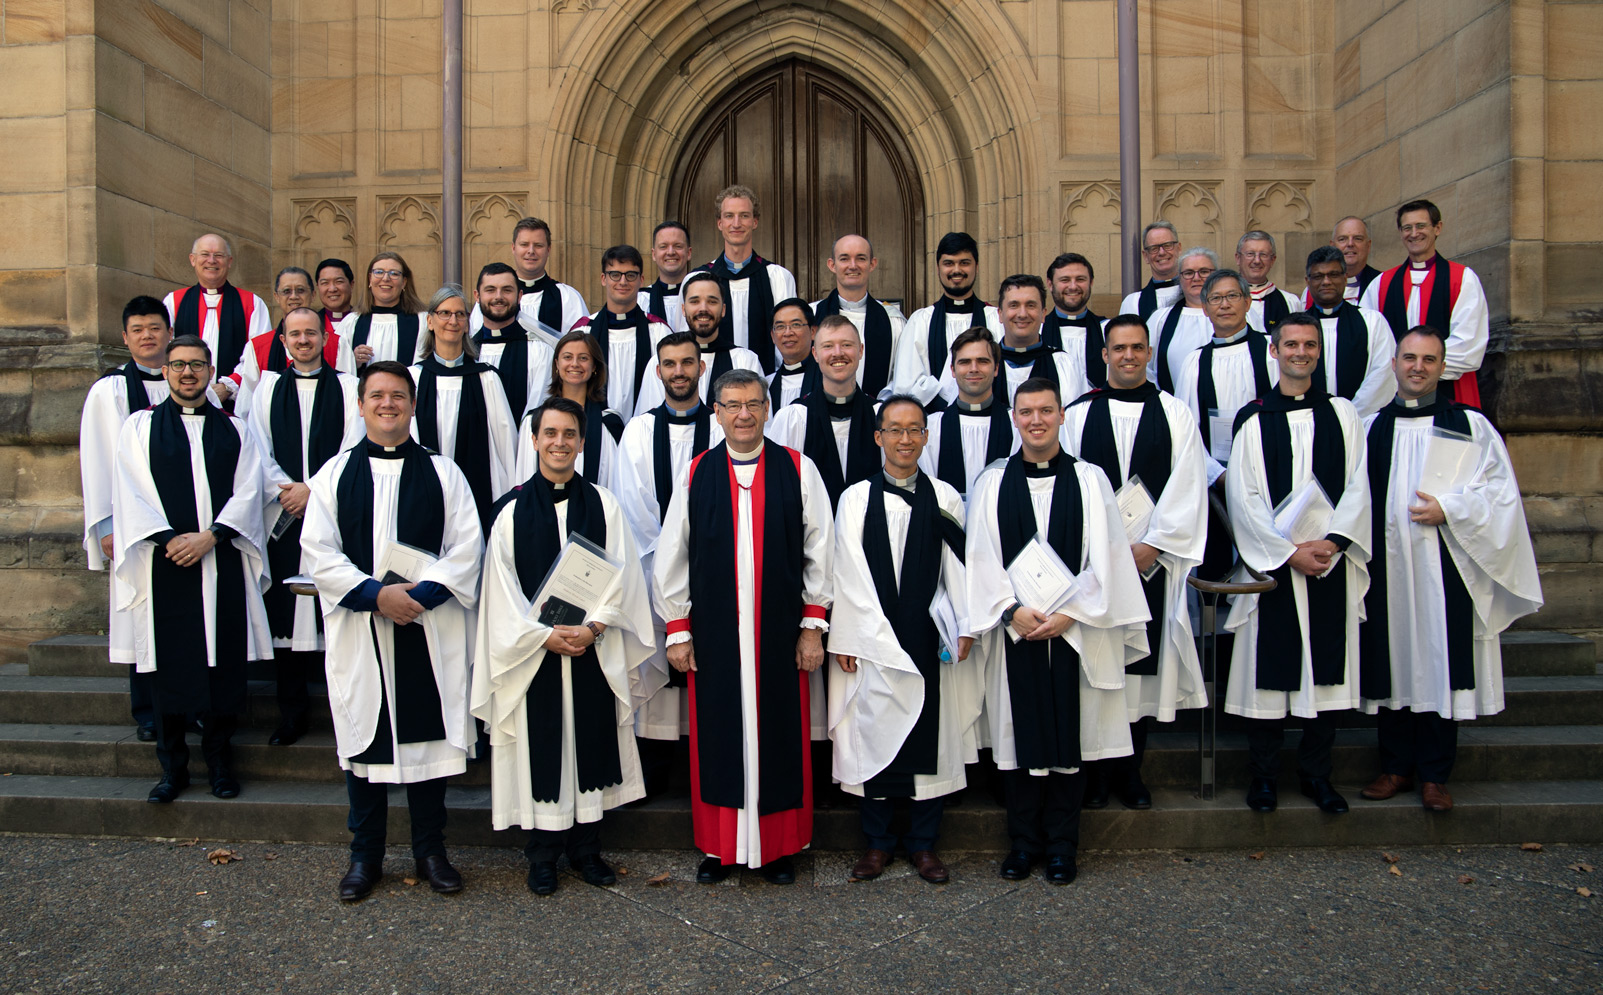 Ordinands and the Archbishop pose for the official photo on the steps of the Cathedral (right click to open a larger image)